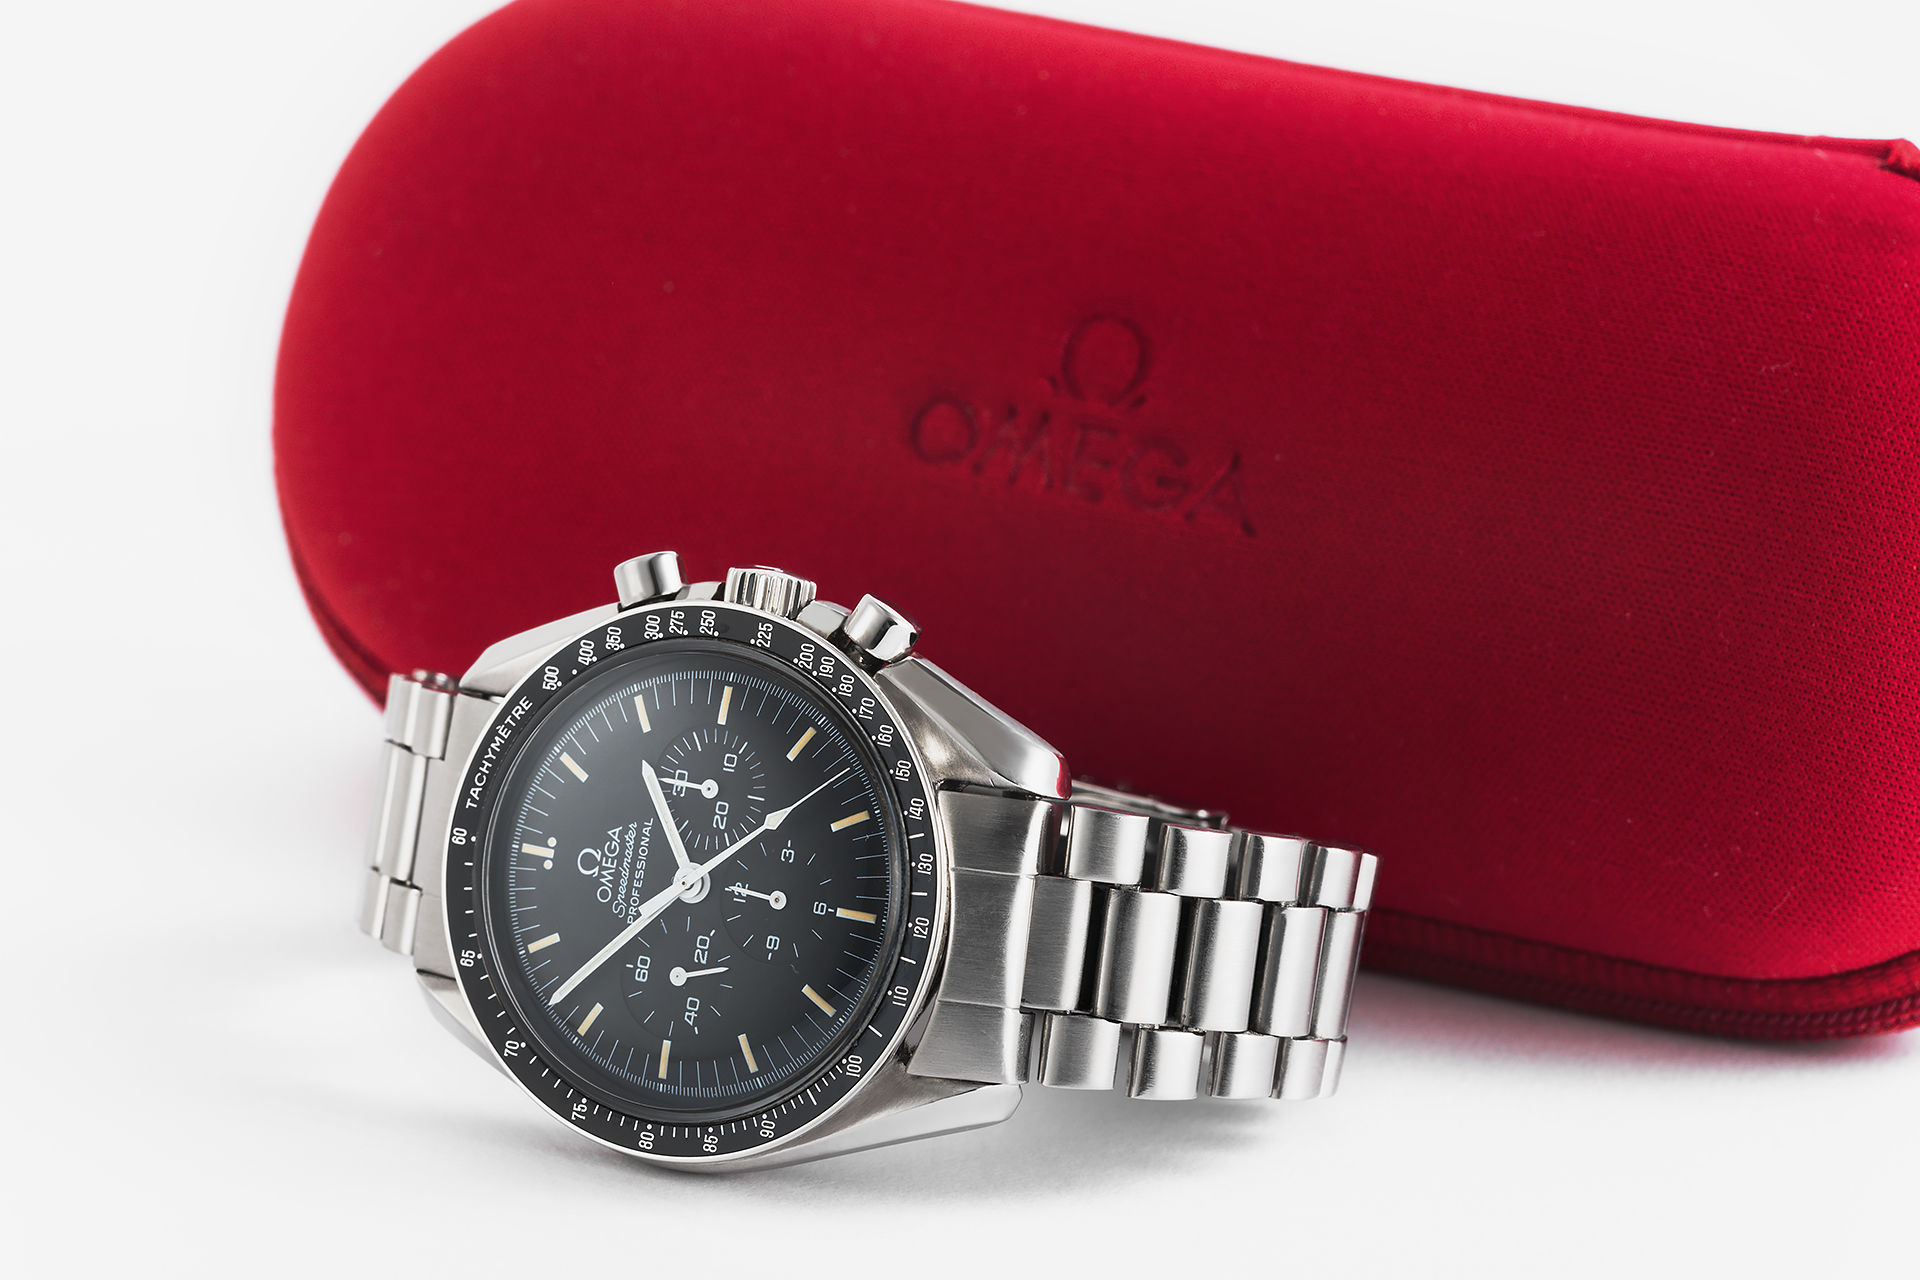 ref ST145.022 71 | Vintage 'Moon Watch' | Omega Speedmaster